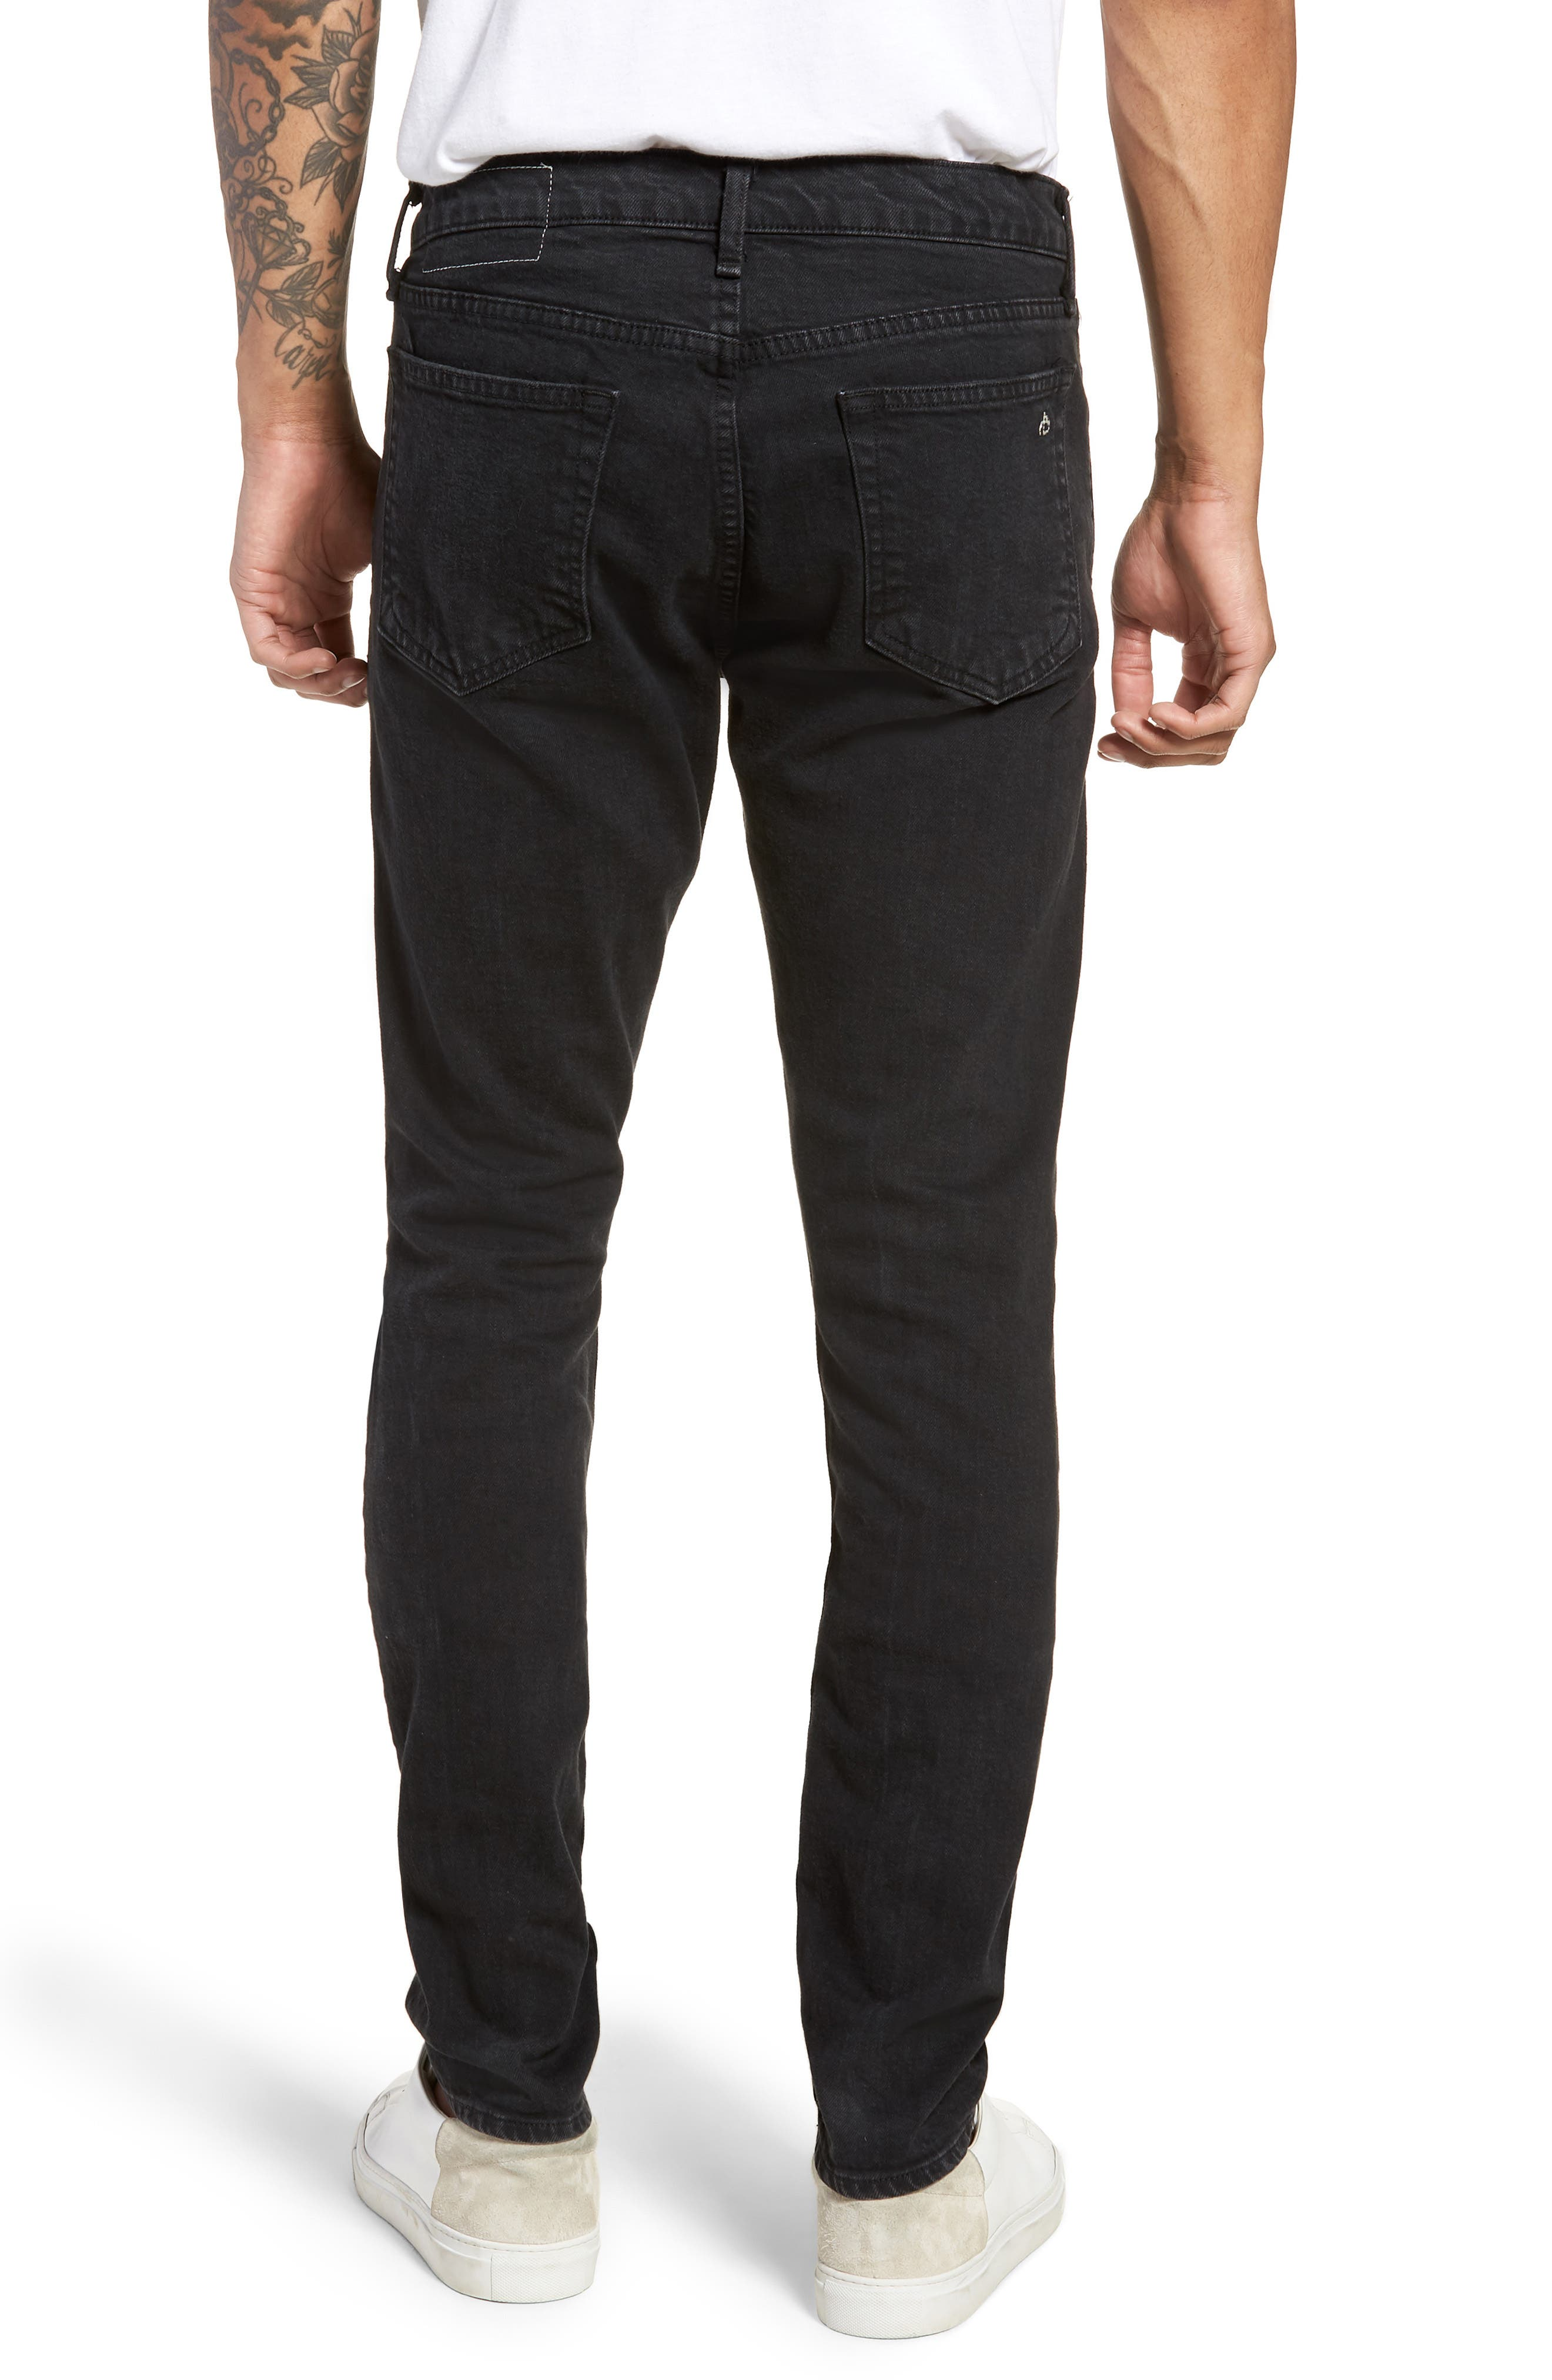 Fit 1 Skinny Fit Jeans,                             Alternate thumbnail 2, color,                             Shelter W/ Holes